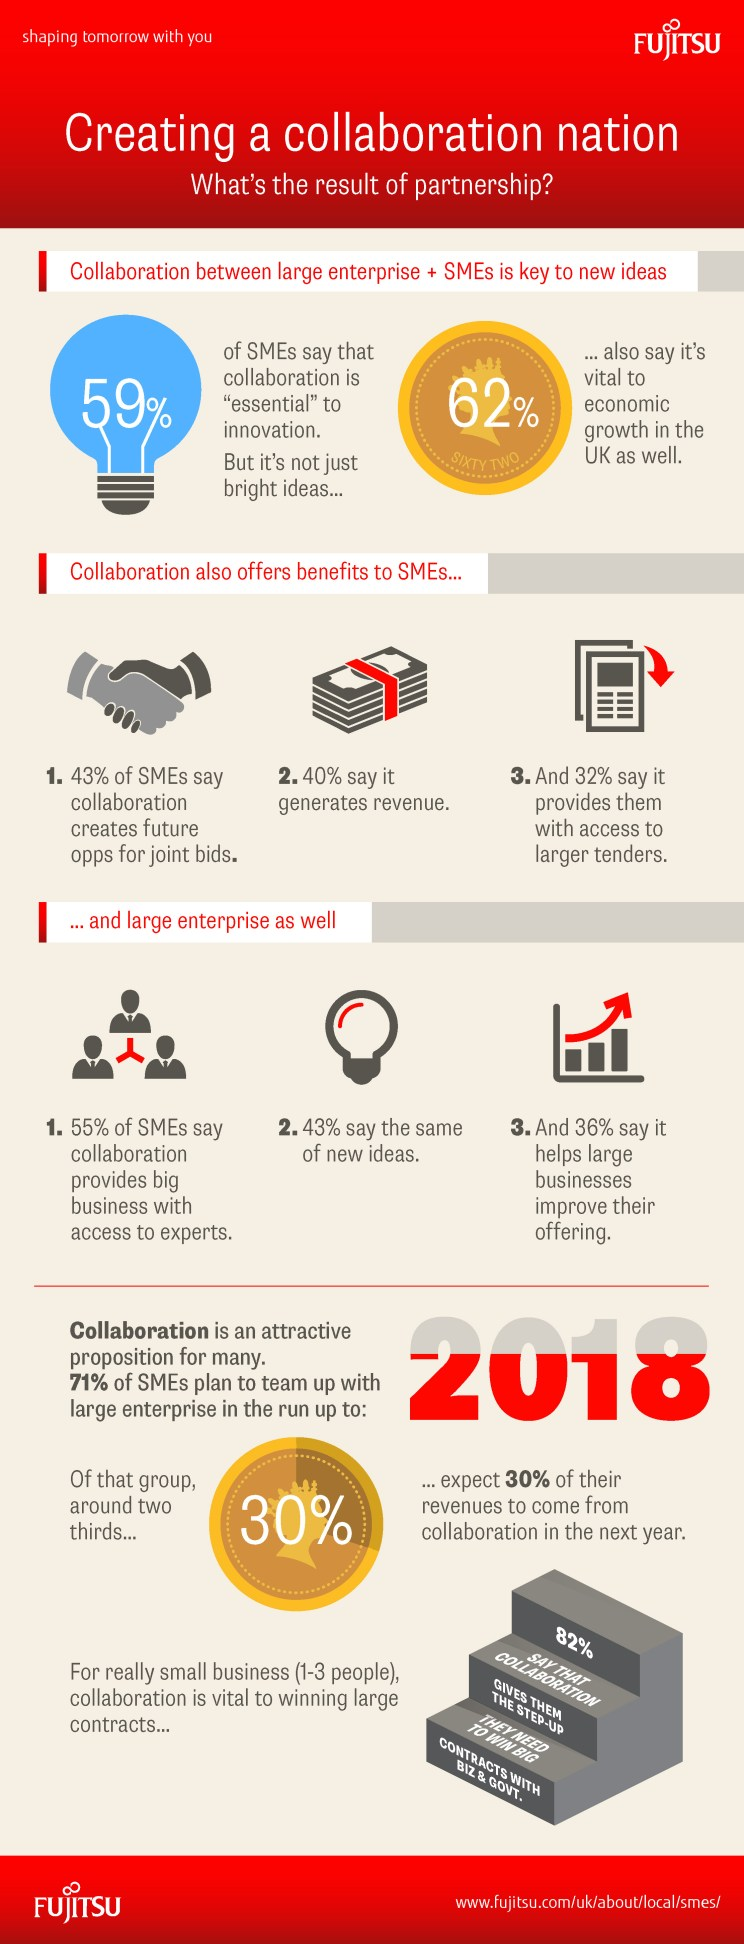 Fujitsu - CN - Result of Partnership Infographic